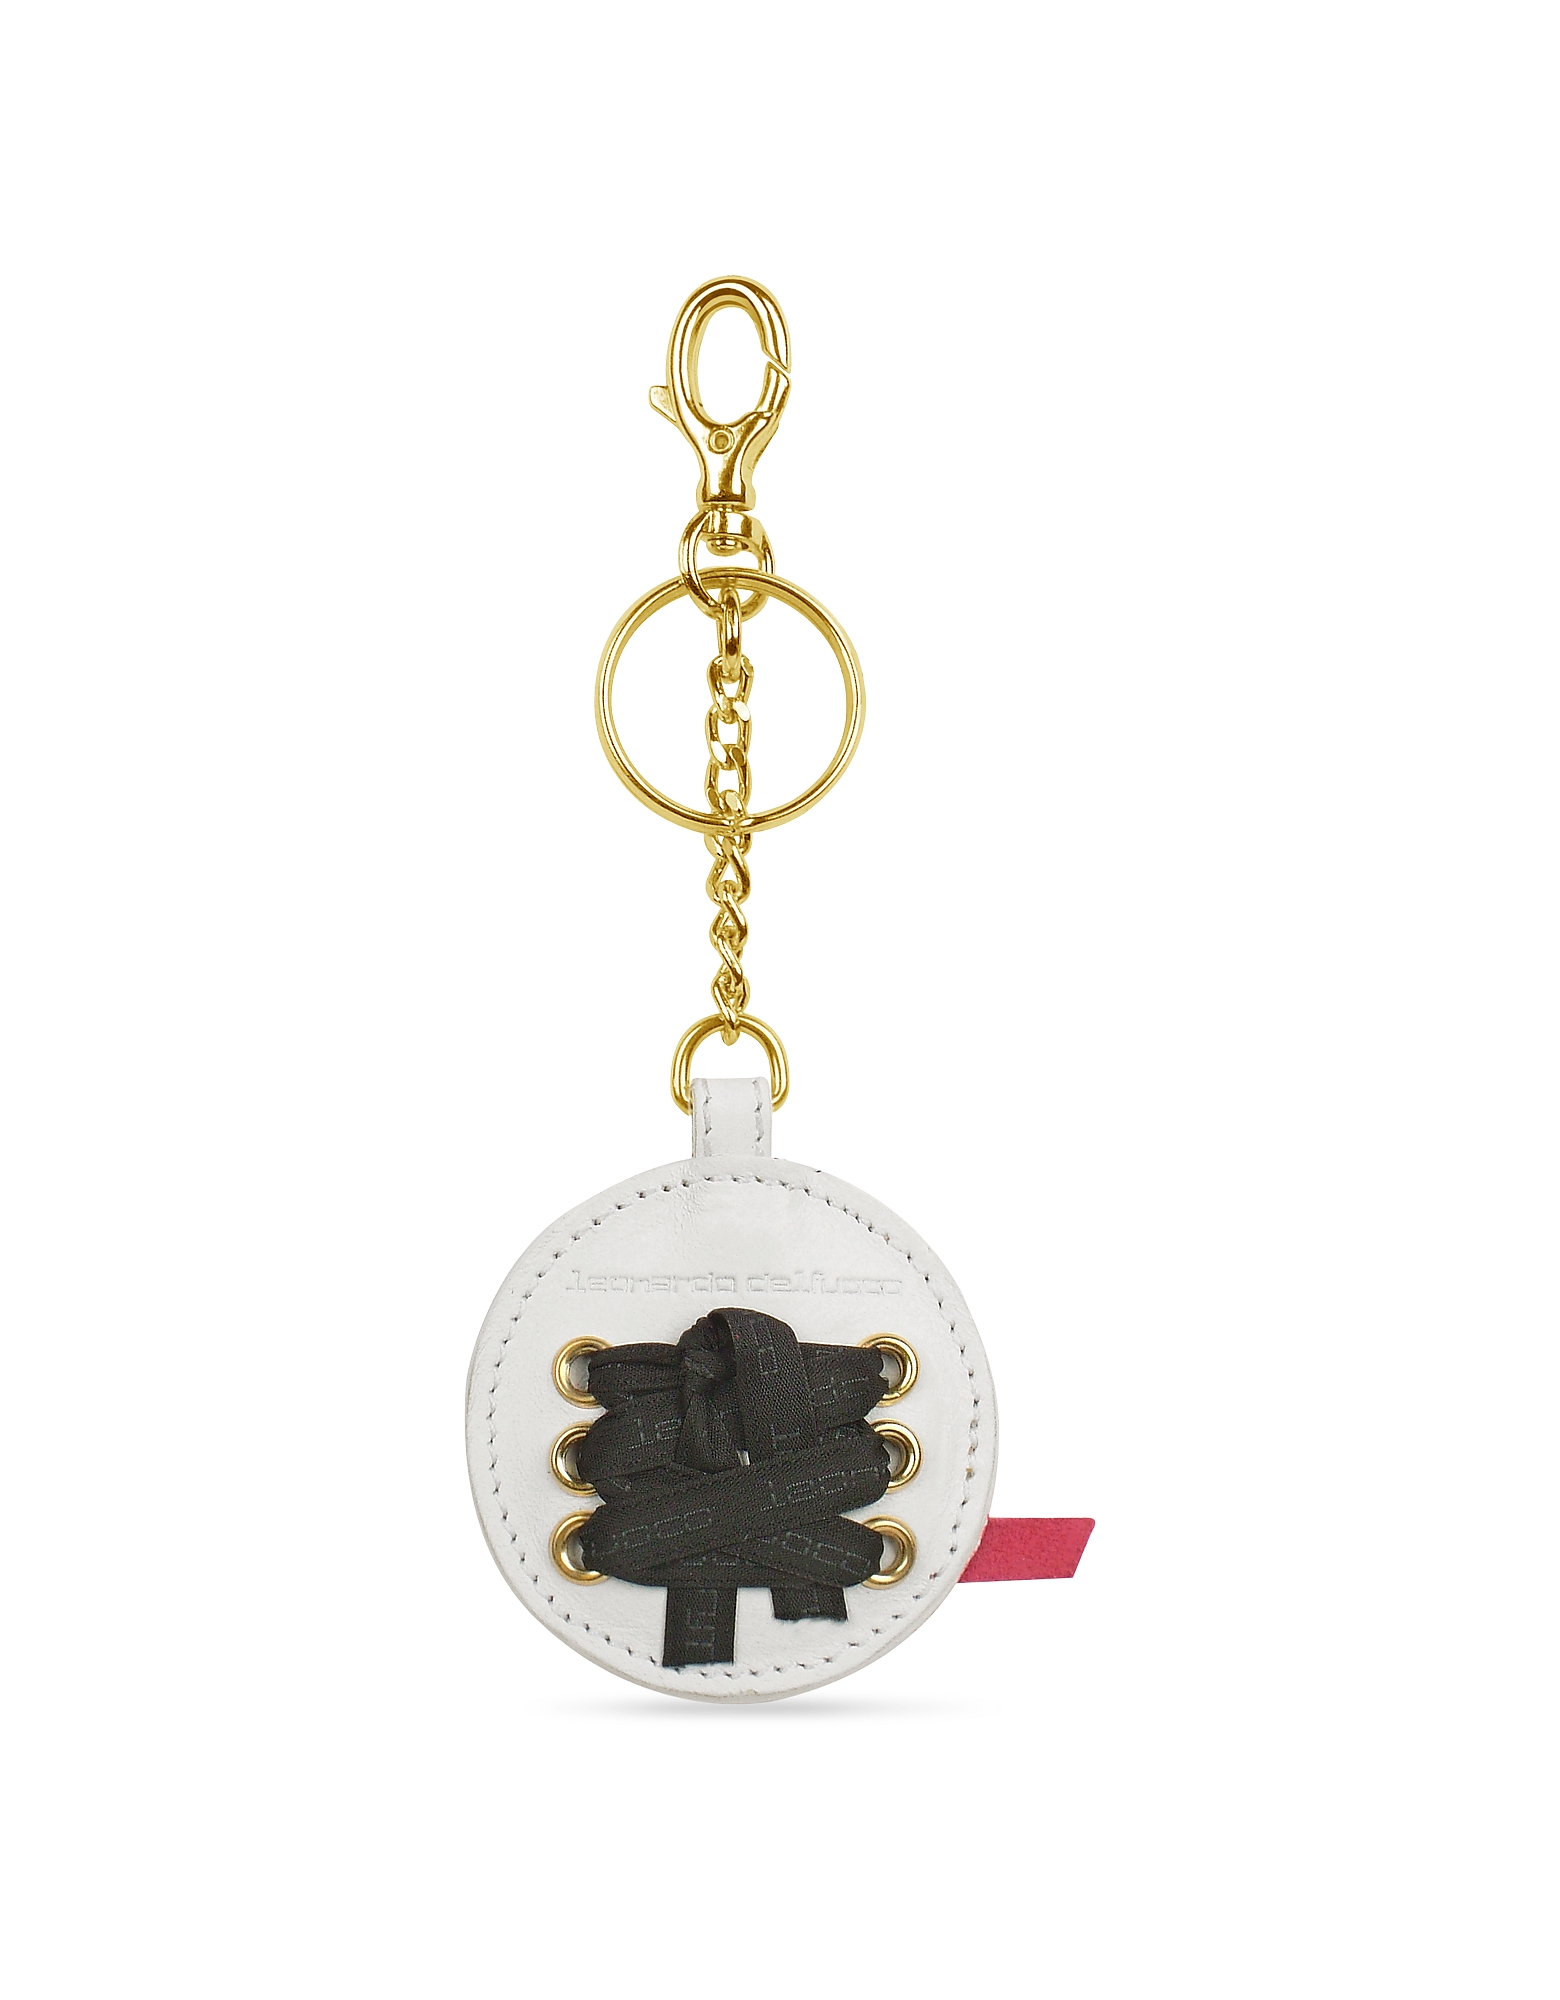 Leonardo Delfuoco Small Leather Goods, Gaia - Round Signature Key Ring